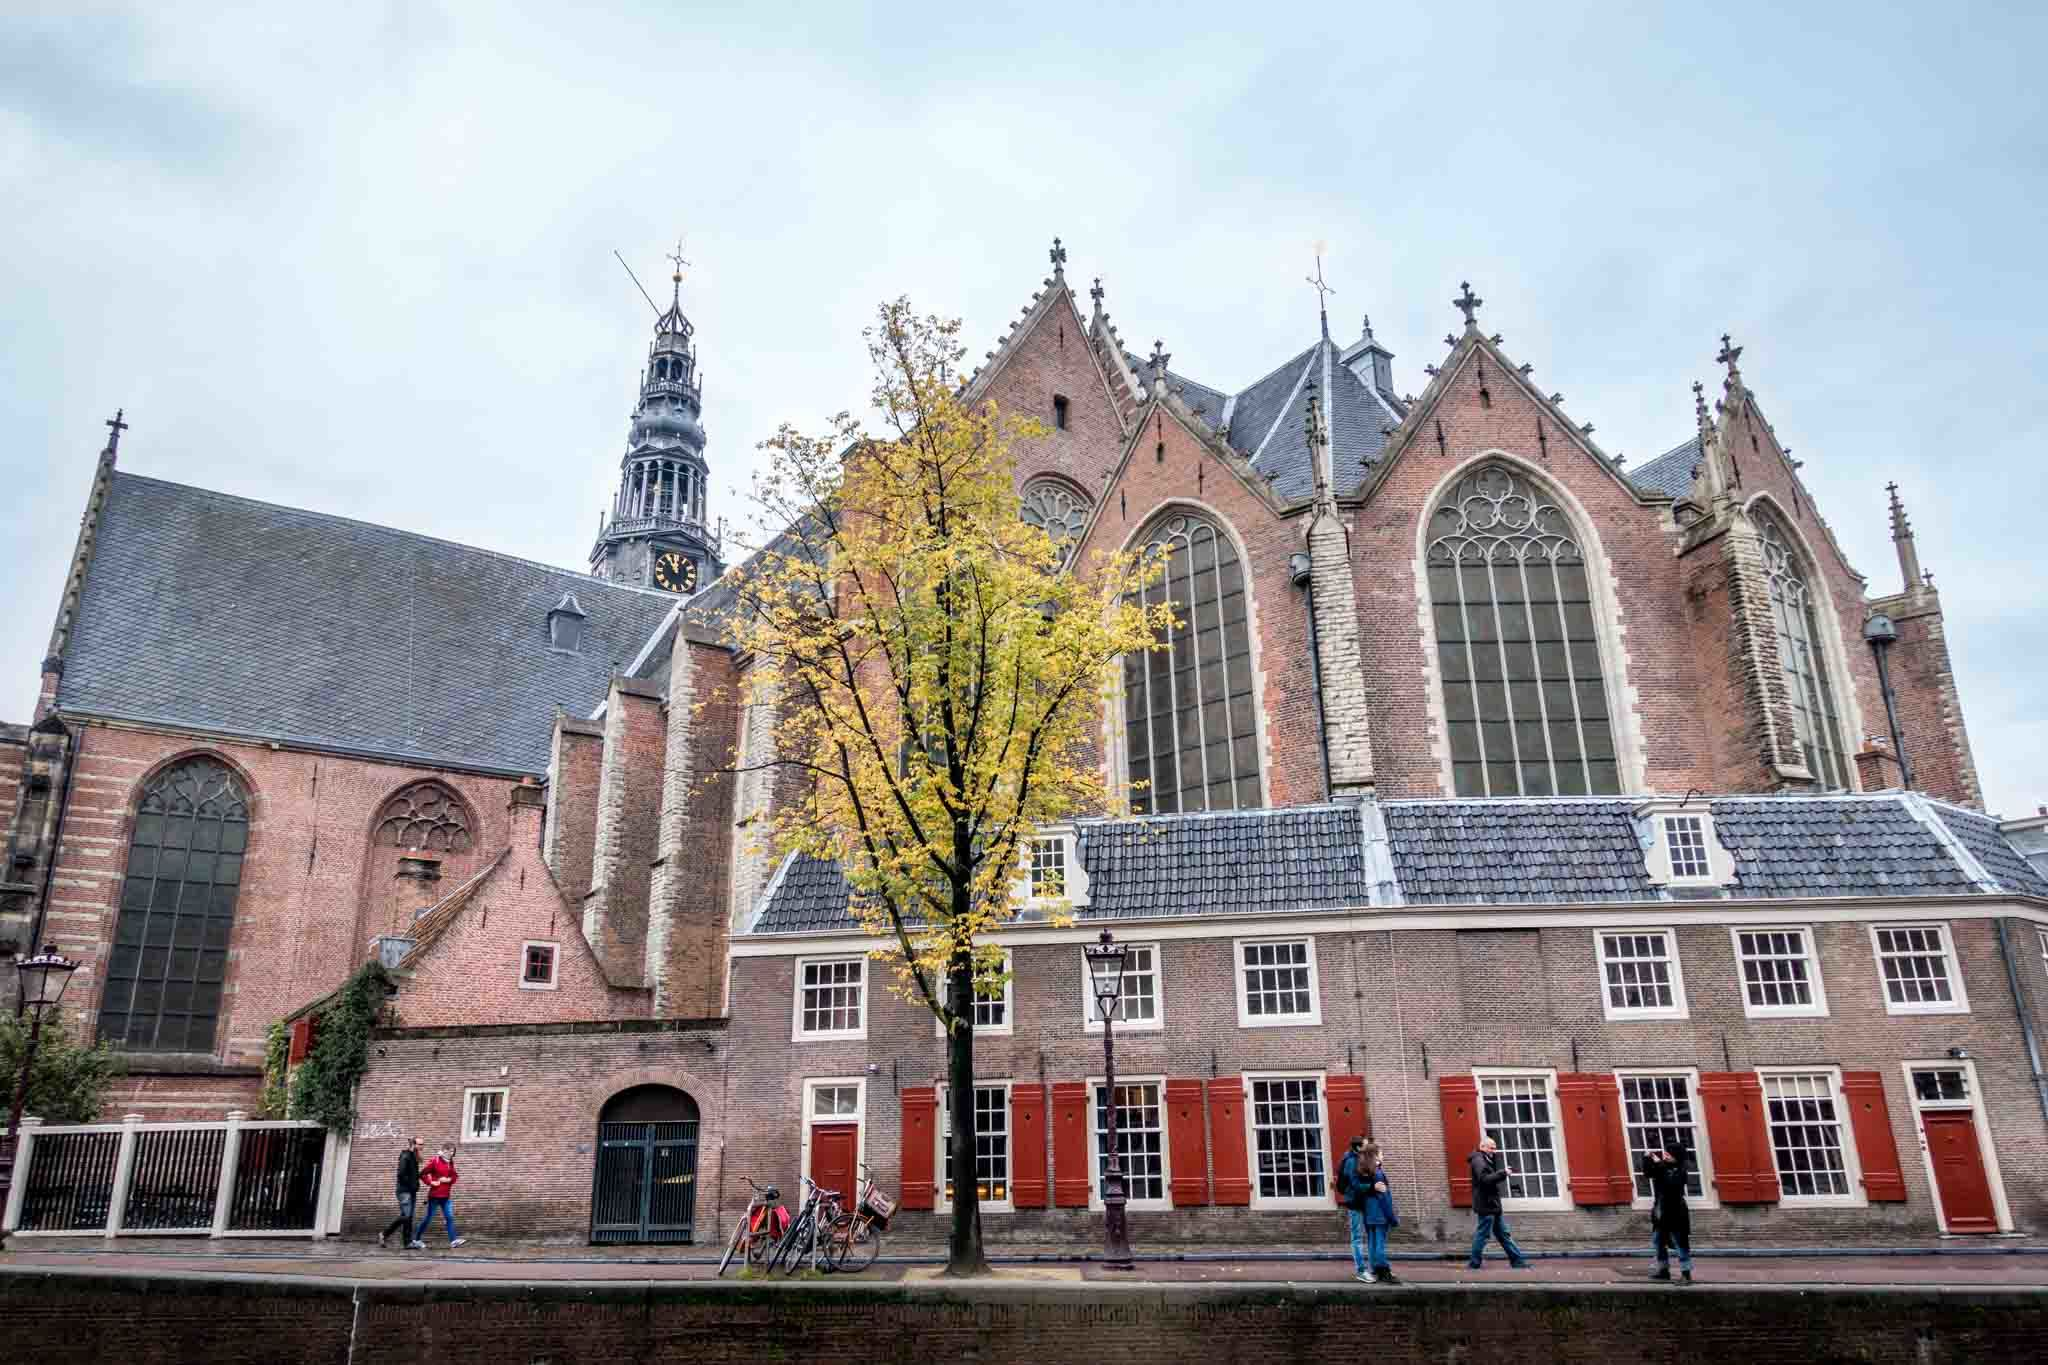 Exterior of the 14th-century Oude Kerk church, one of the top Amsterdam points of interest